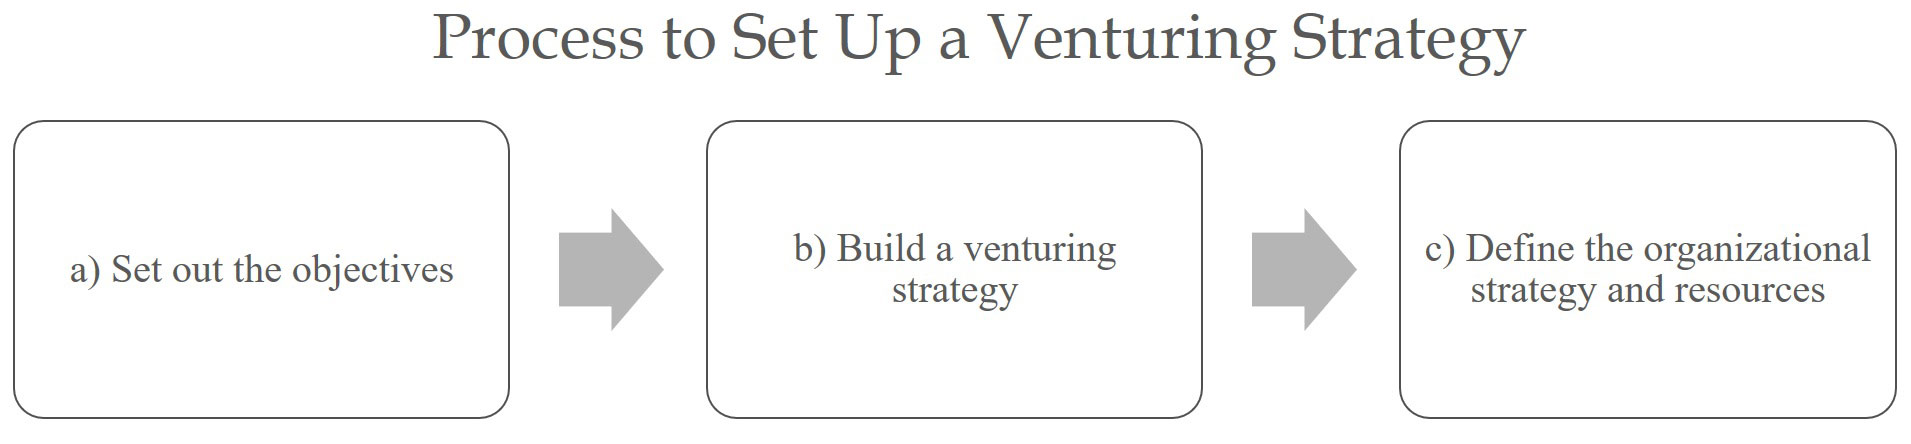 Process to set up a venturing strategy.